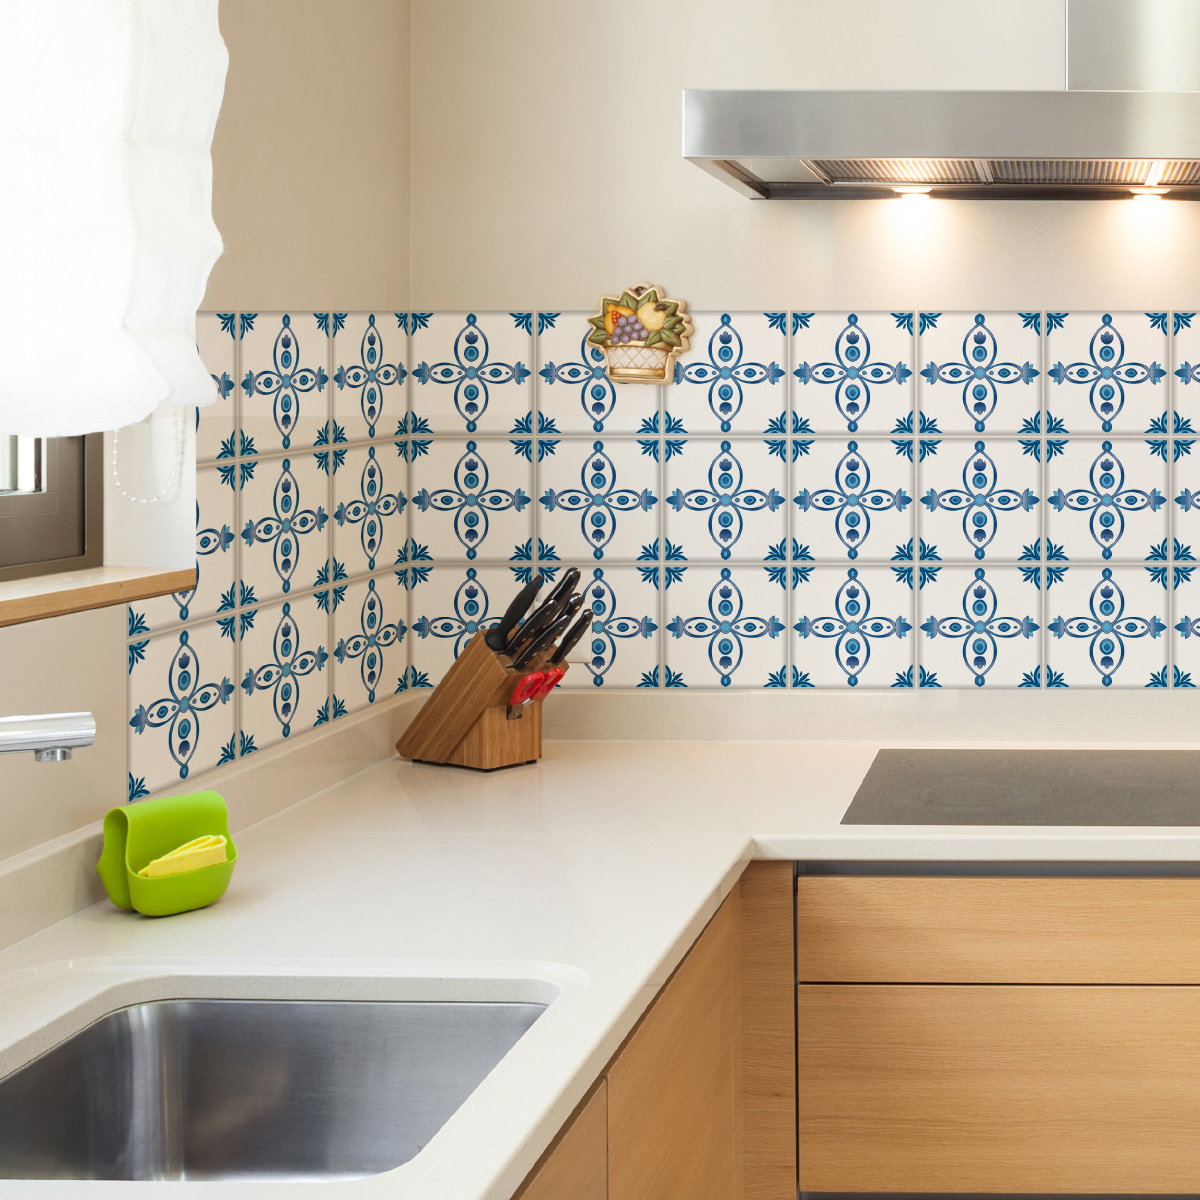 9 stickers carrelages delft almere cuisine carrelages ambiance sticker. Black Bedroom Furniture Sets. Home Design Ideas